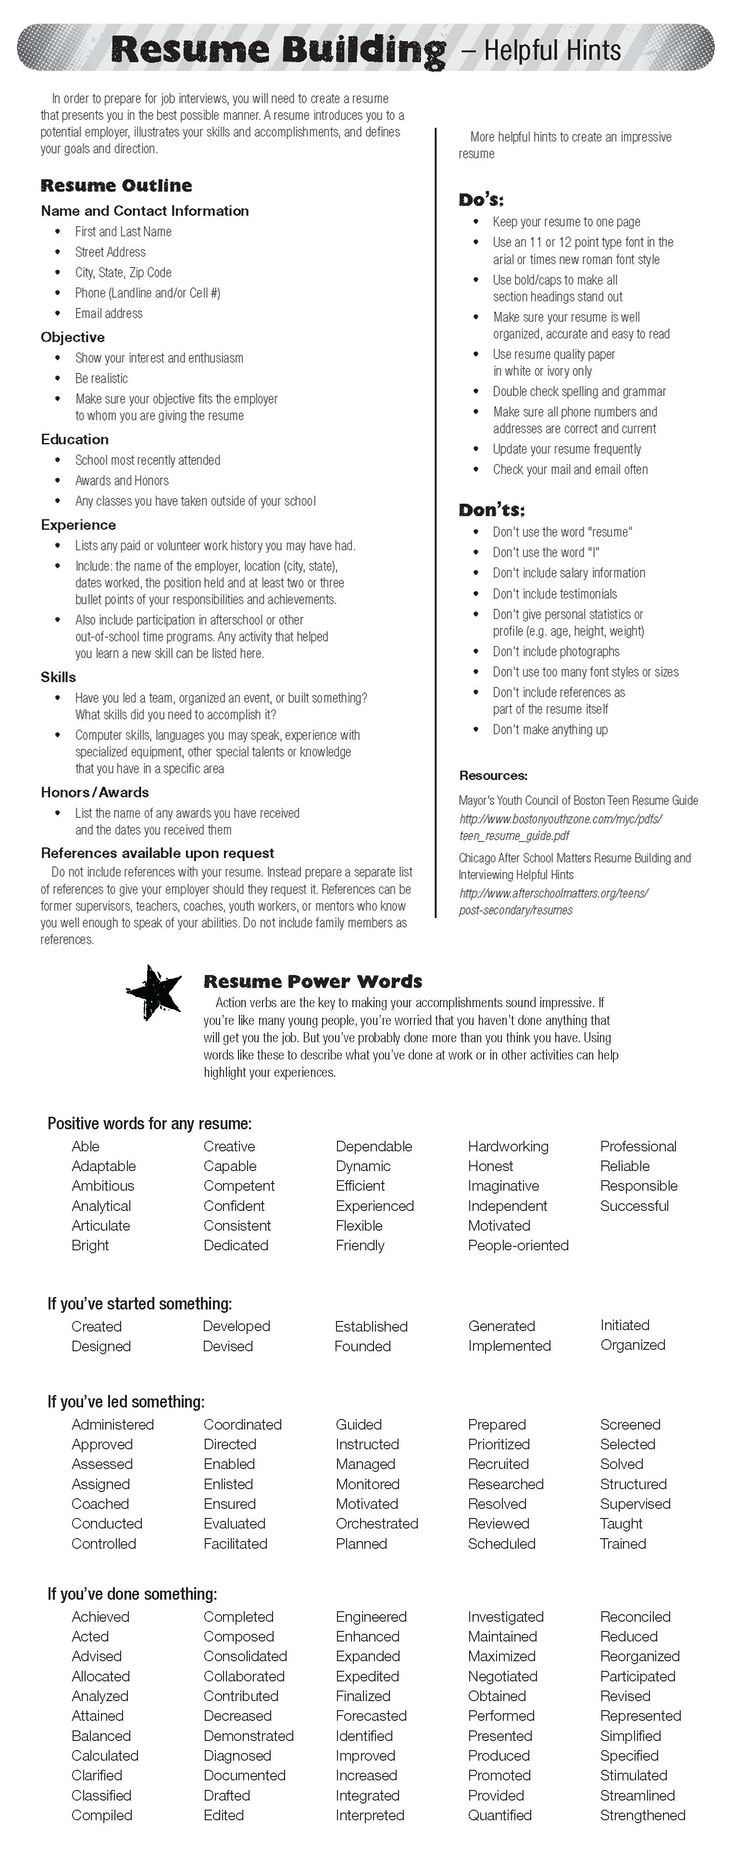 Opposenewapstandardsus  Nice  Ideas About Resume On Pinterest  Cv Format Resume  With Marvelous Check Out Todays Resume Building Tips Resume Resumepowerwords With Amazing College Student Resumes Also Sales Director Resume In Addition Good Resume Template And Aviation Resume As Well As Marketing Skills Resume Additionally Marketing Resume Sample From Pinterestcom With Opposenewapstandardsus  Marvelous  Ideas About Resume On Pinterest  Cv Format Resume  With Amazing Check Out Todays Resume Building Tips Resume Resumepowerwords And Nice College Student Resumes Also Sales Director Resume In Addition Good Resume Template From Pinterestcom